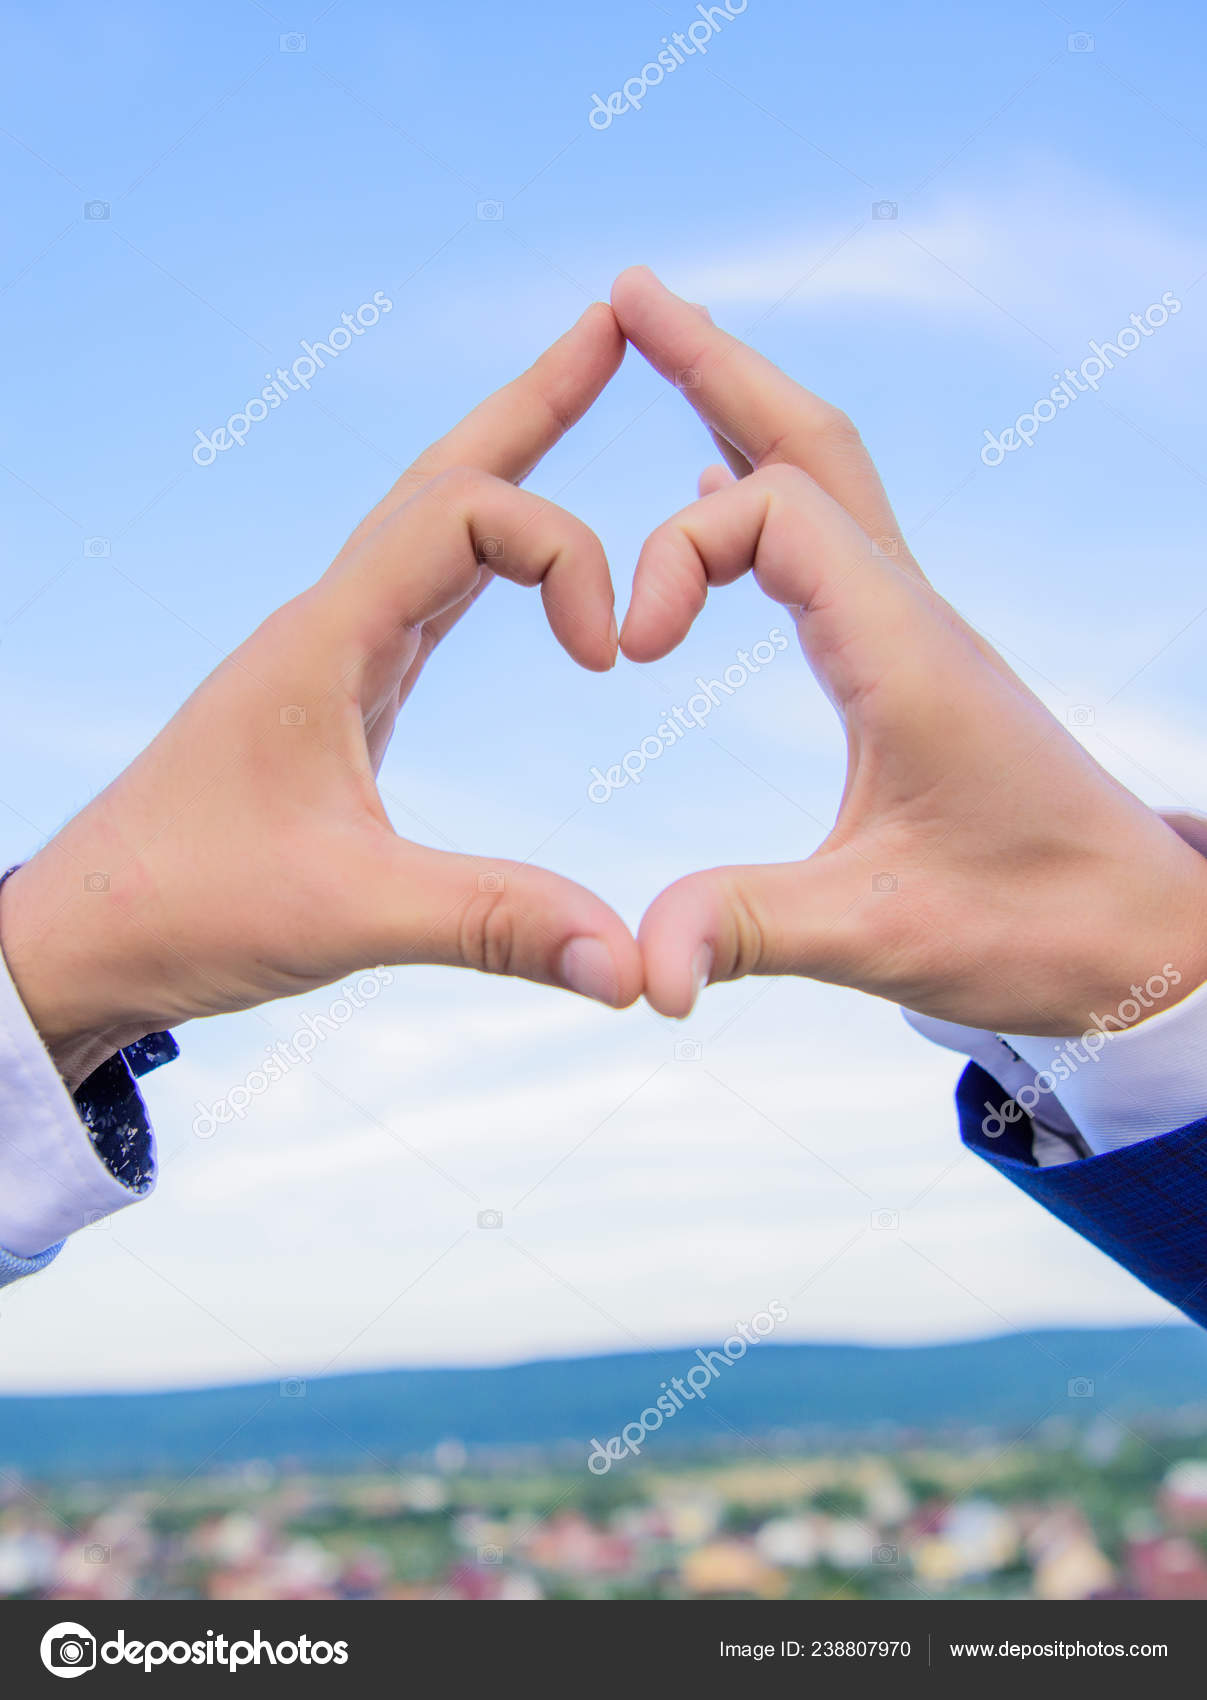 Put Picture In Heart Shape : picture, heart, shape, Hands, Heart, Shape, Gesture, Symbol, Romance., Forms, Using, Fingers., Together, Background., Concept, Stock